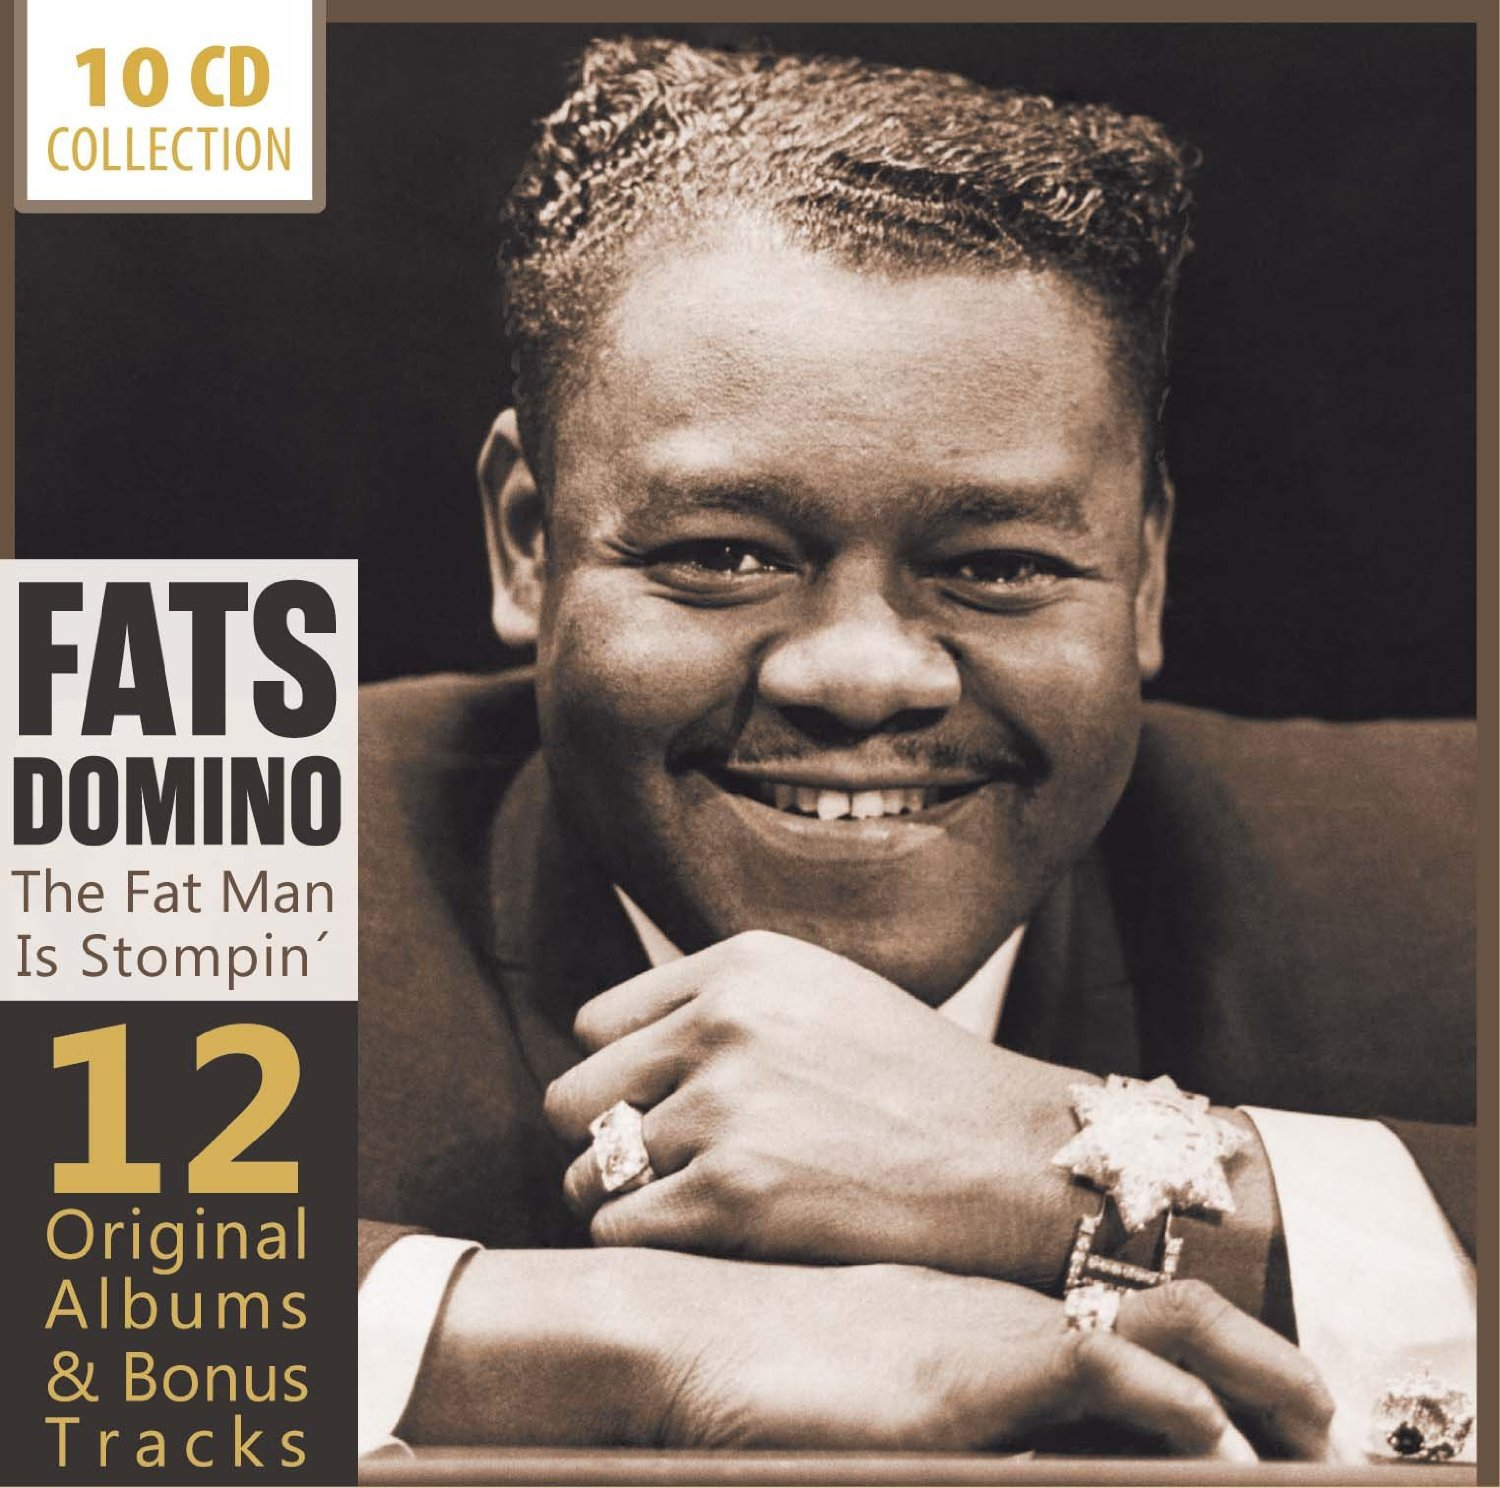 ファッツ・ドミノ / The FAT MAN IS STOMPIN' 12ORIGINAL ALBUMS & BONUS TRACKS